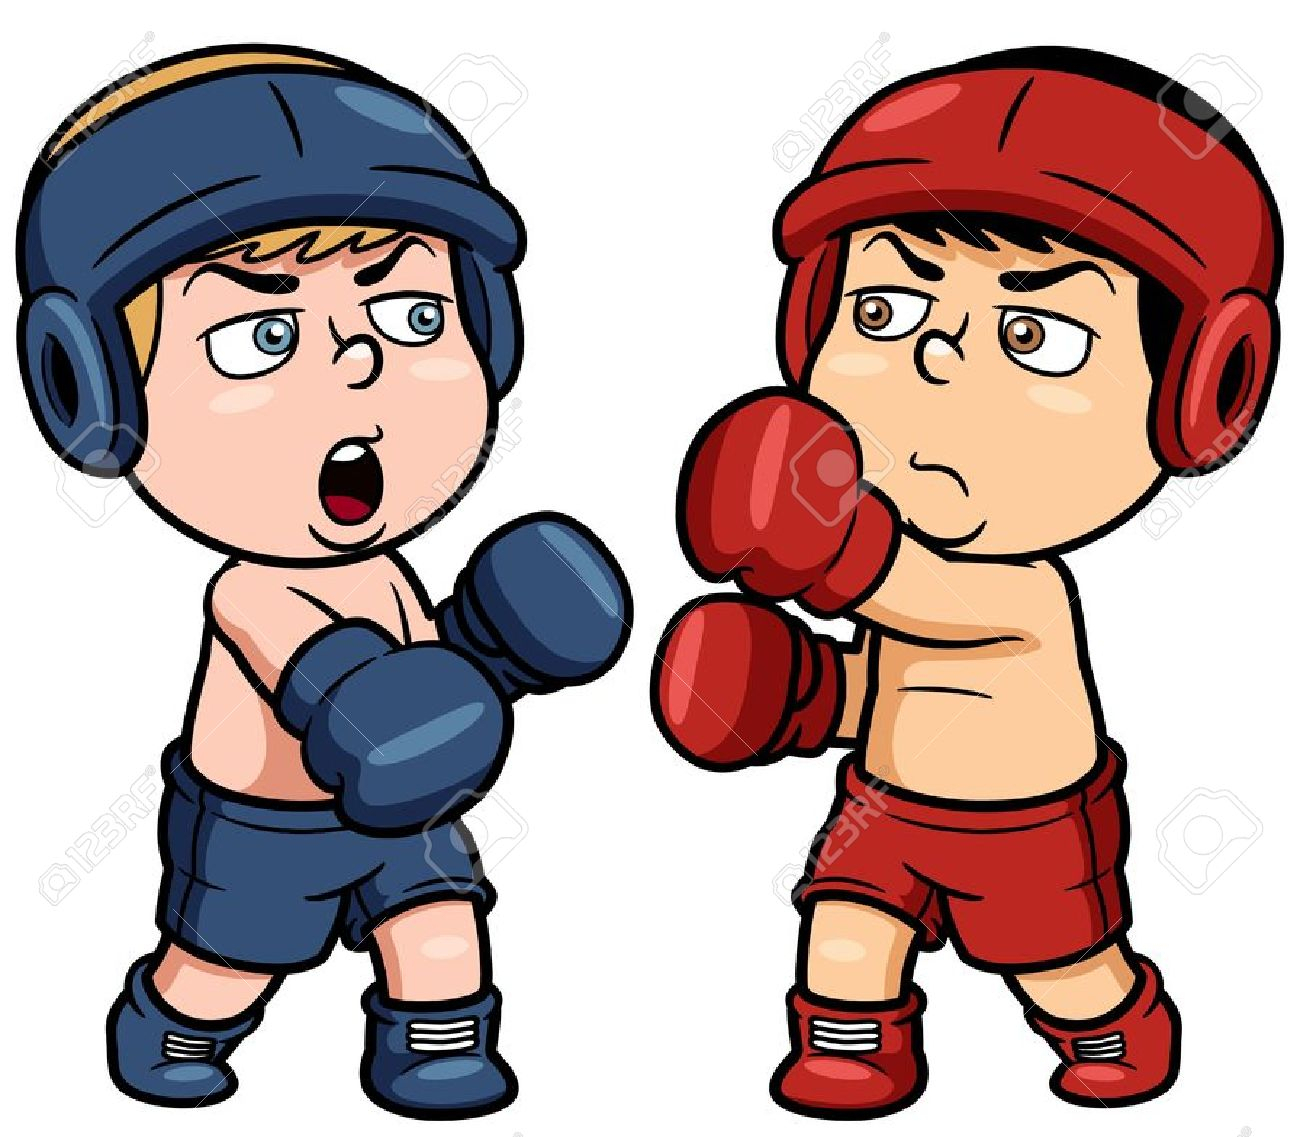 Cartoon drawings pencil and. Boxer clipart comic